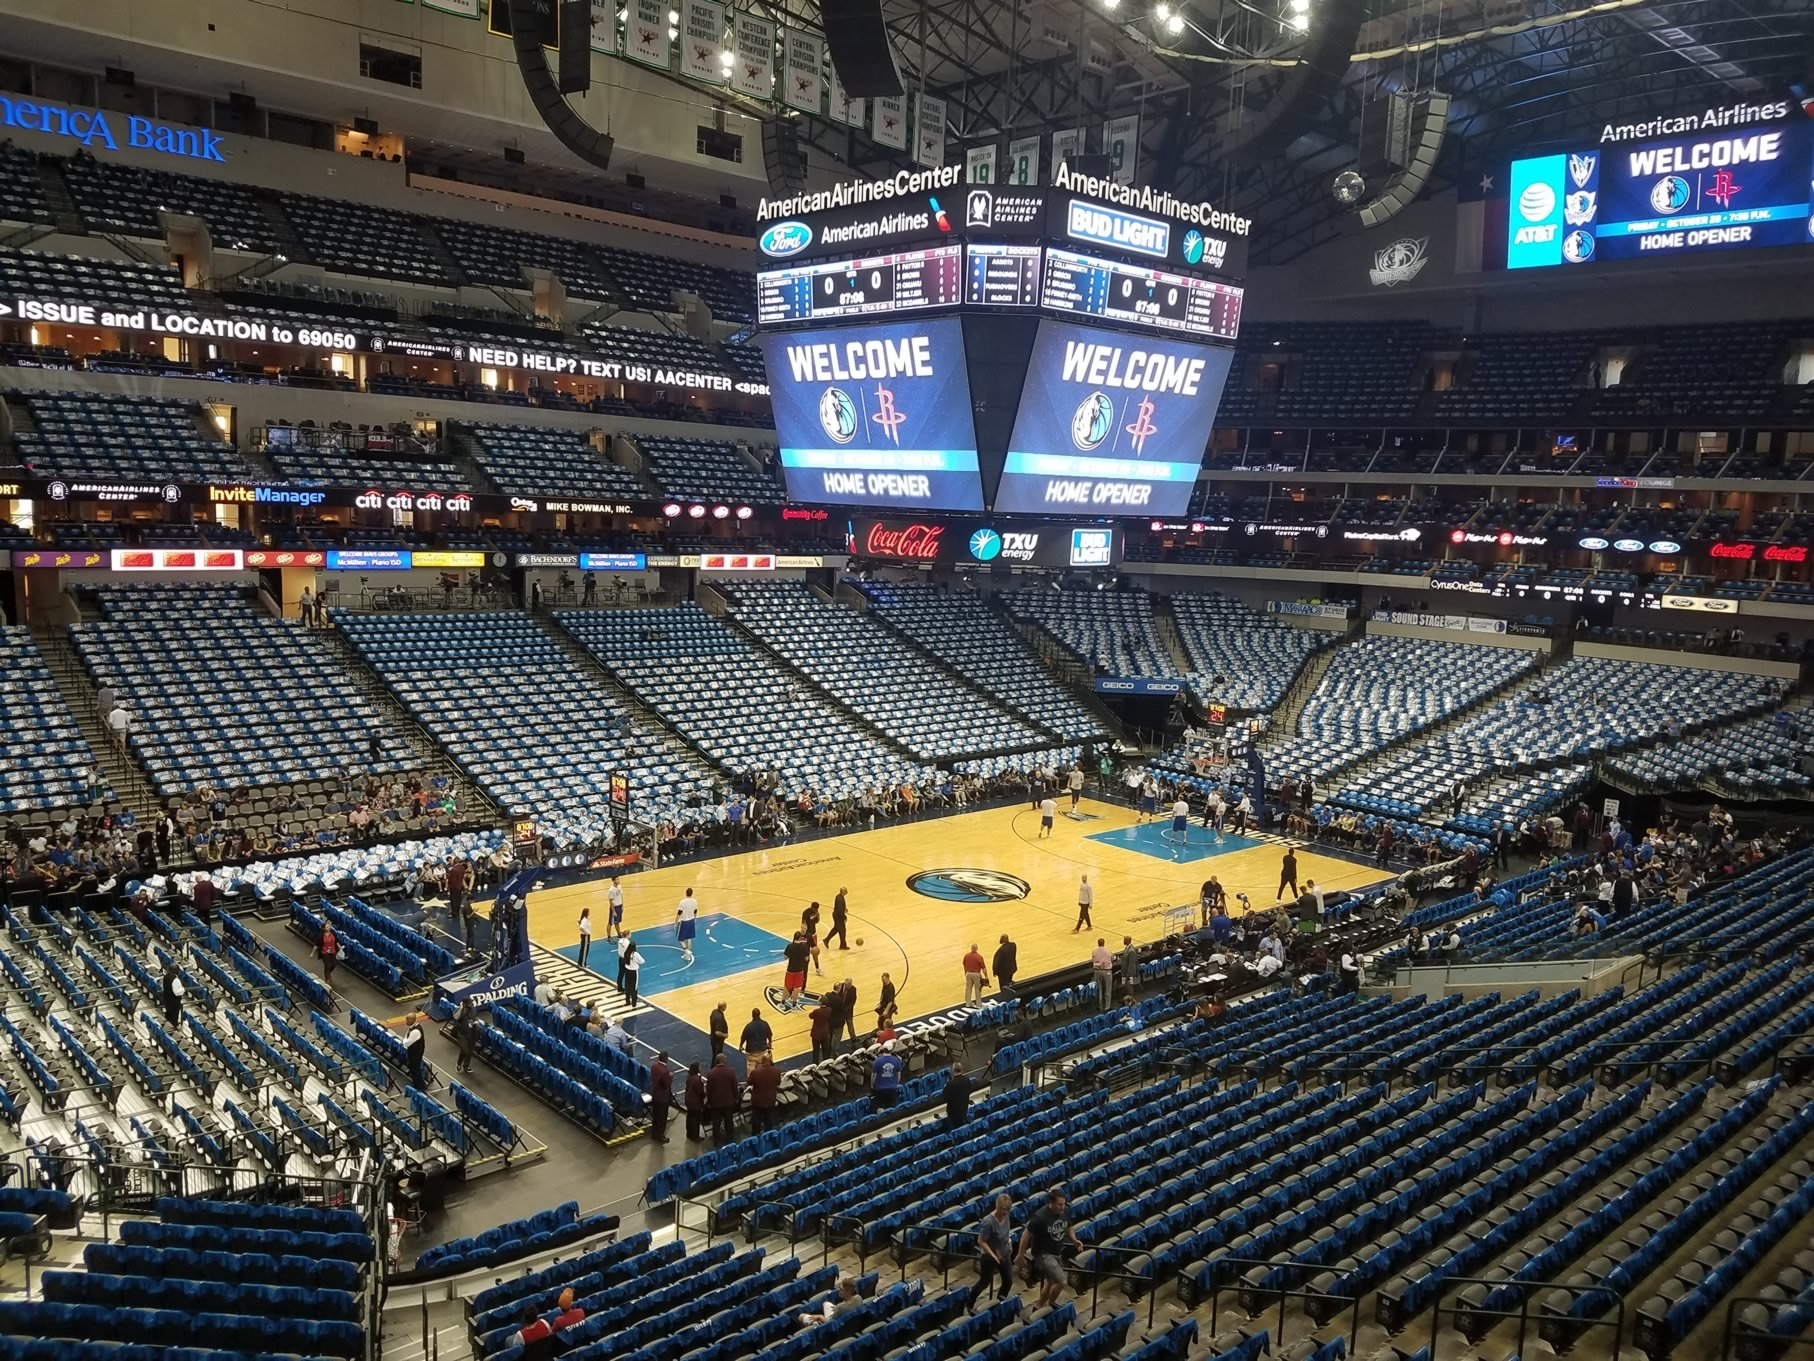 Dallas Mavericks Seat View for American Airlines Center Section 221, Row A